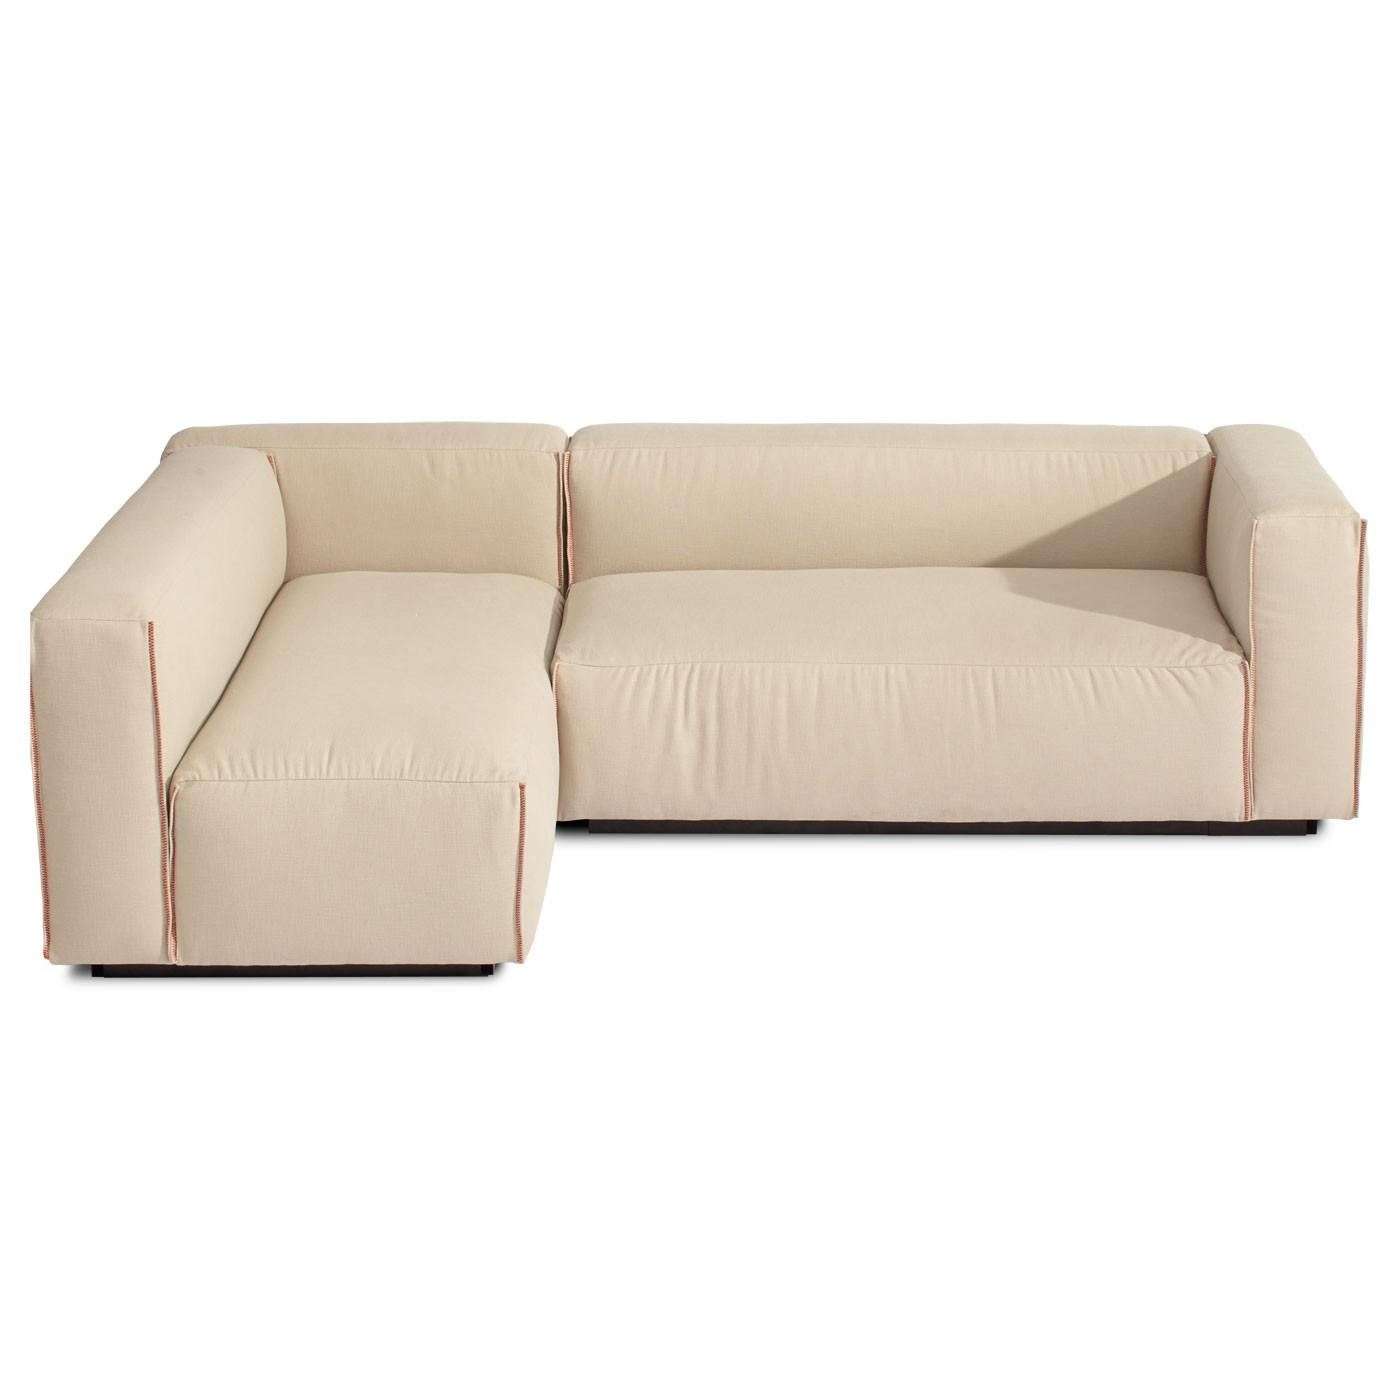 Small L Shaped Sectional Sofa Best 10 Small Sectional Sofa Ideas For Small L Shaped Sectional Sofas (Image 16 of 20)